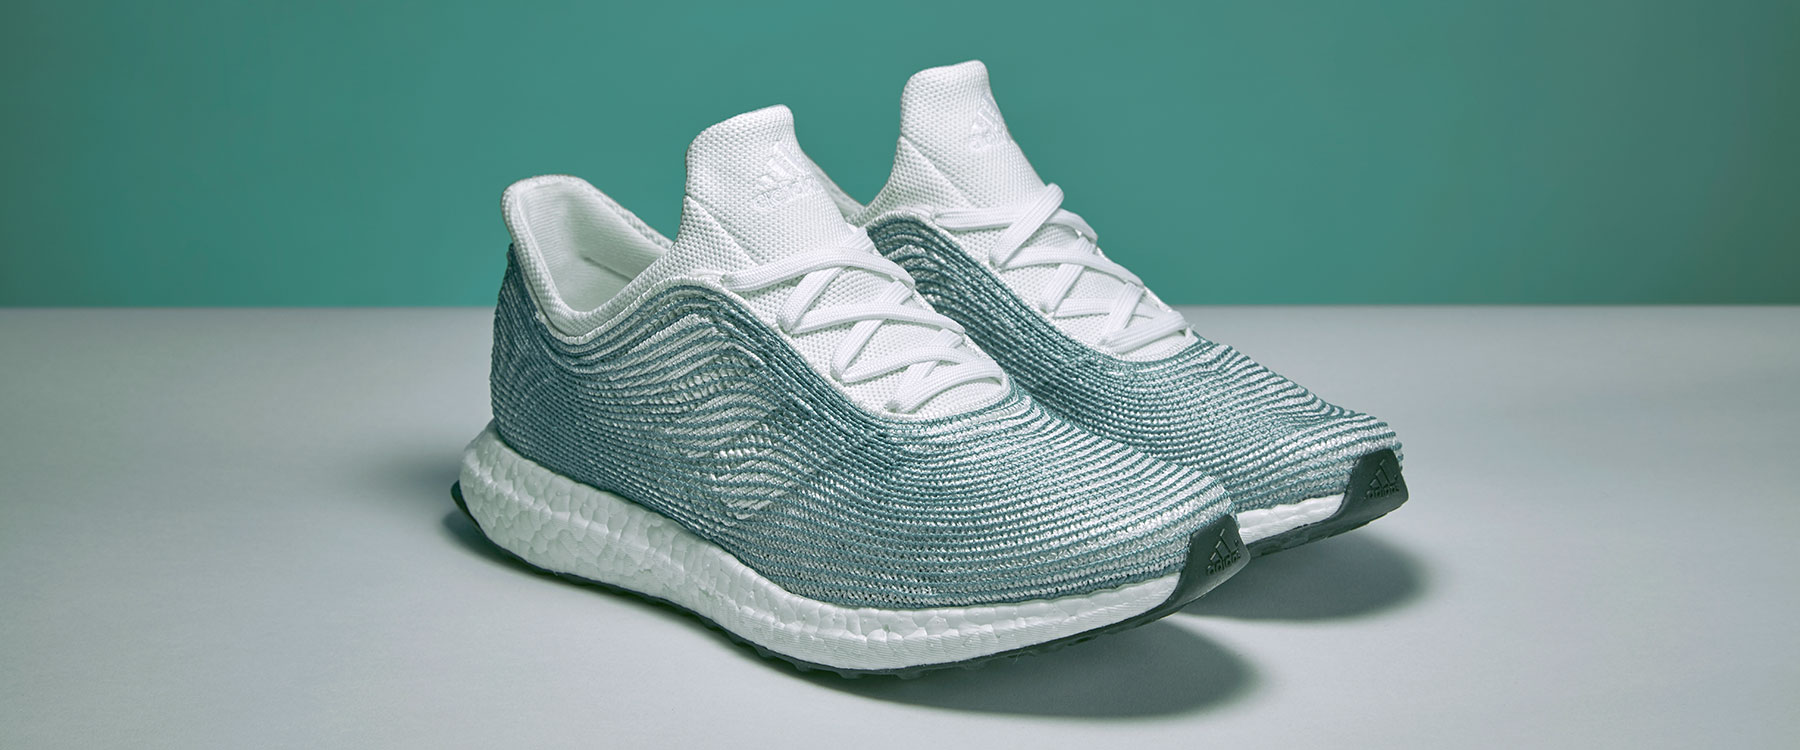 adidas ocean plastic shoes